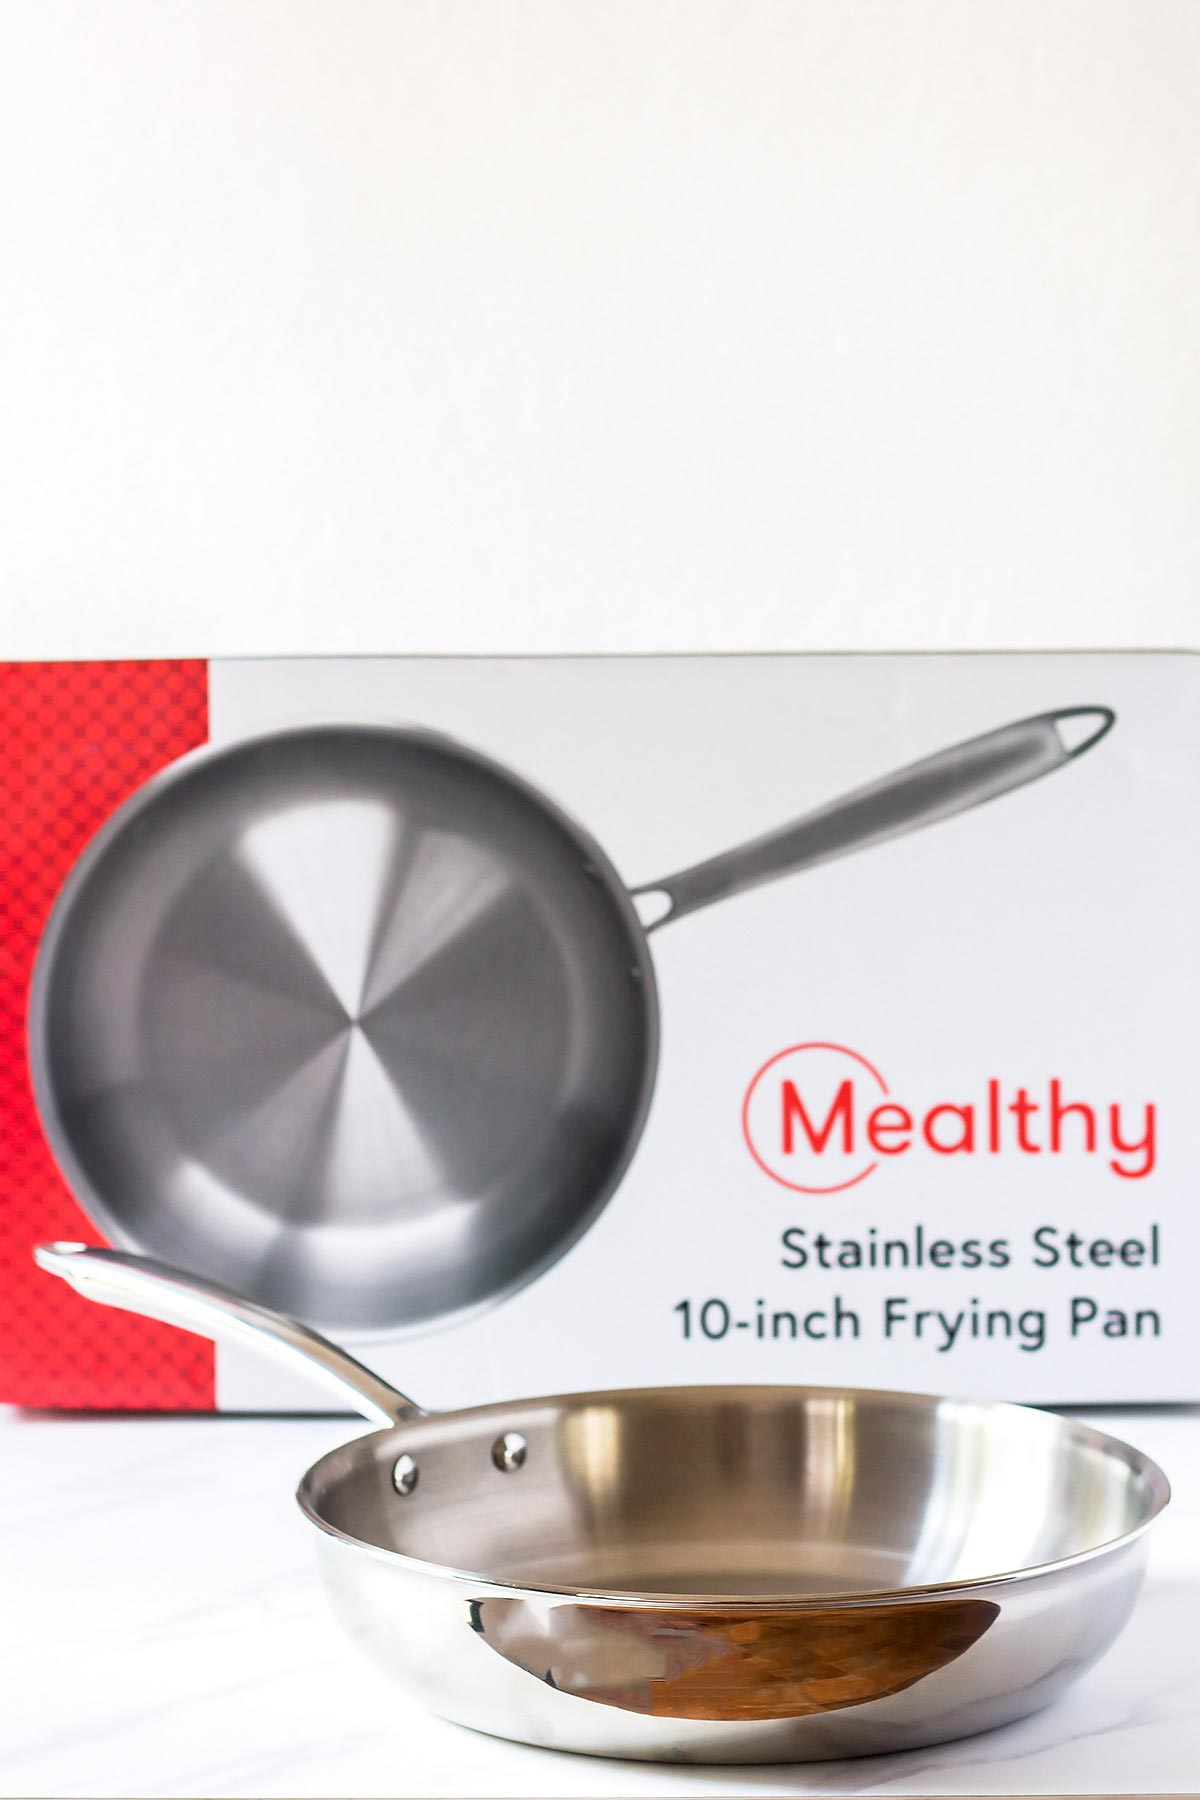 Stainless Steel Frying Pan Review